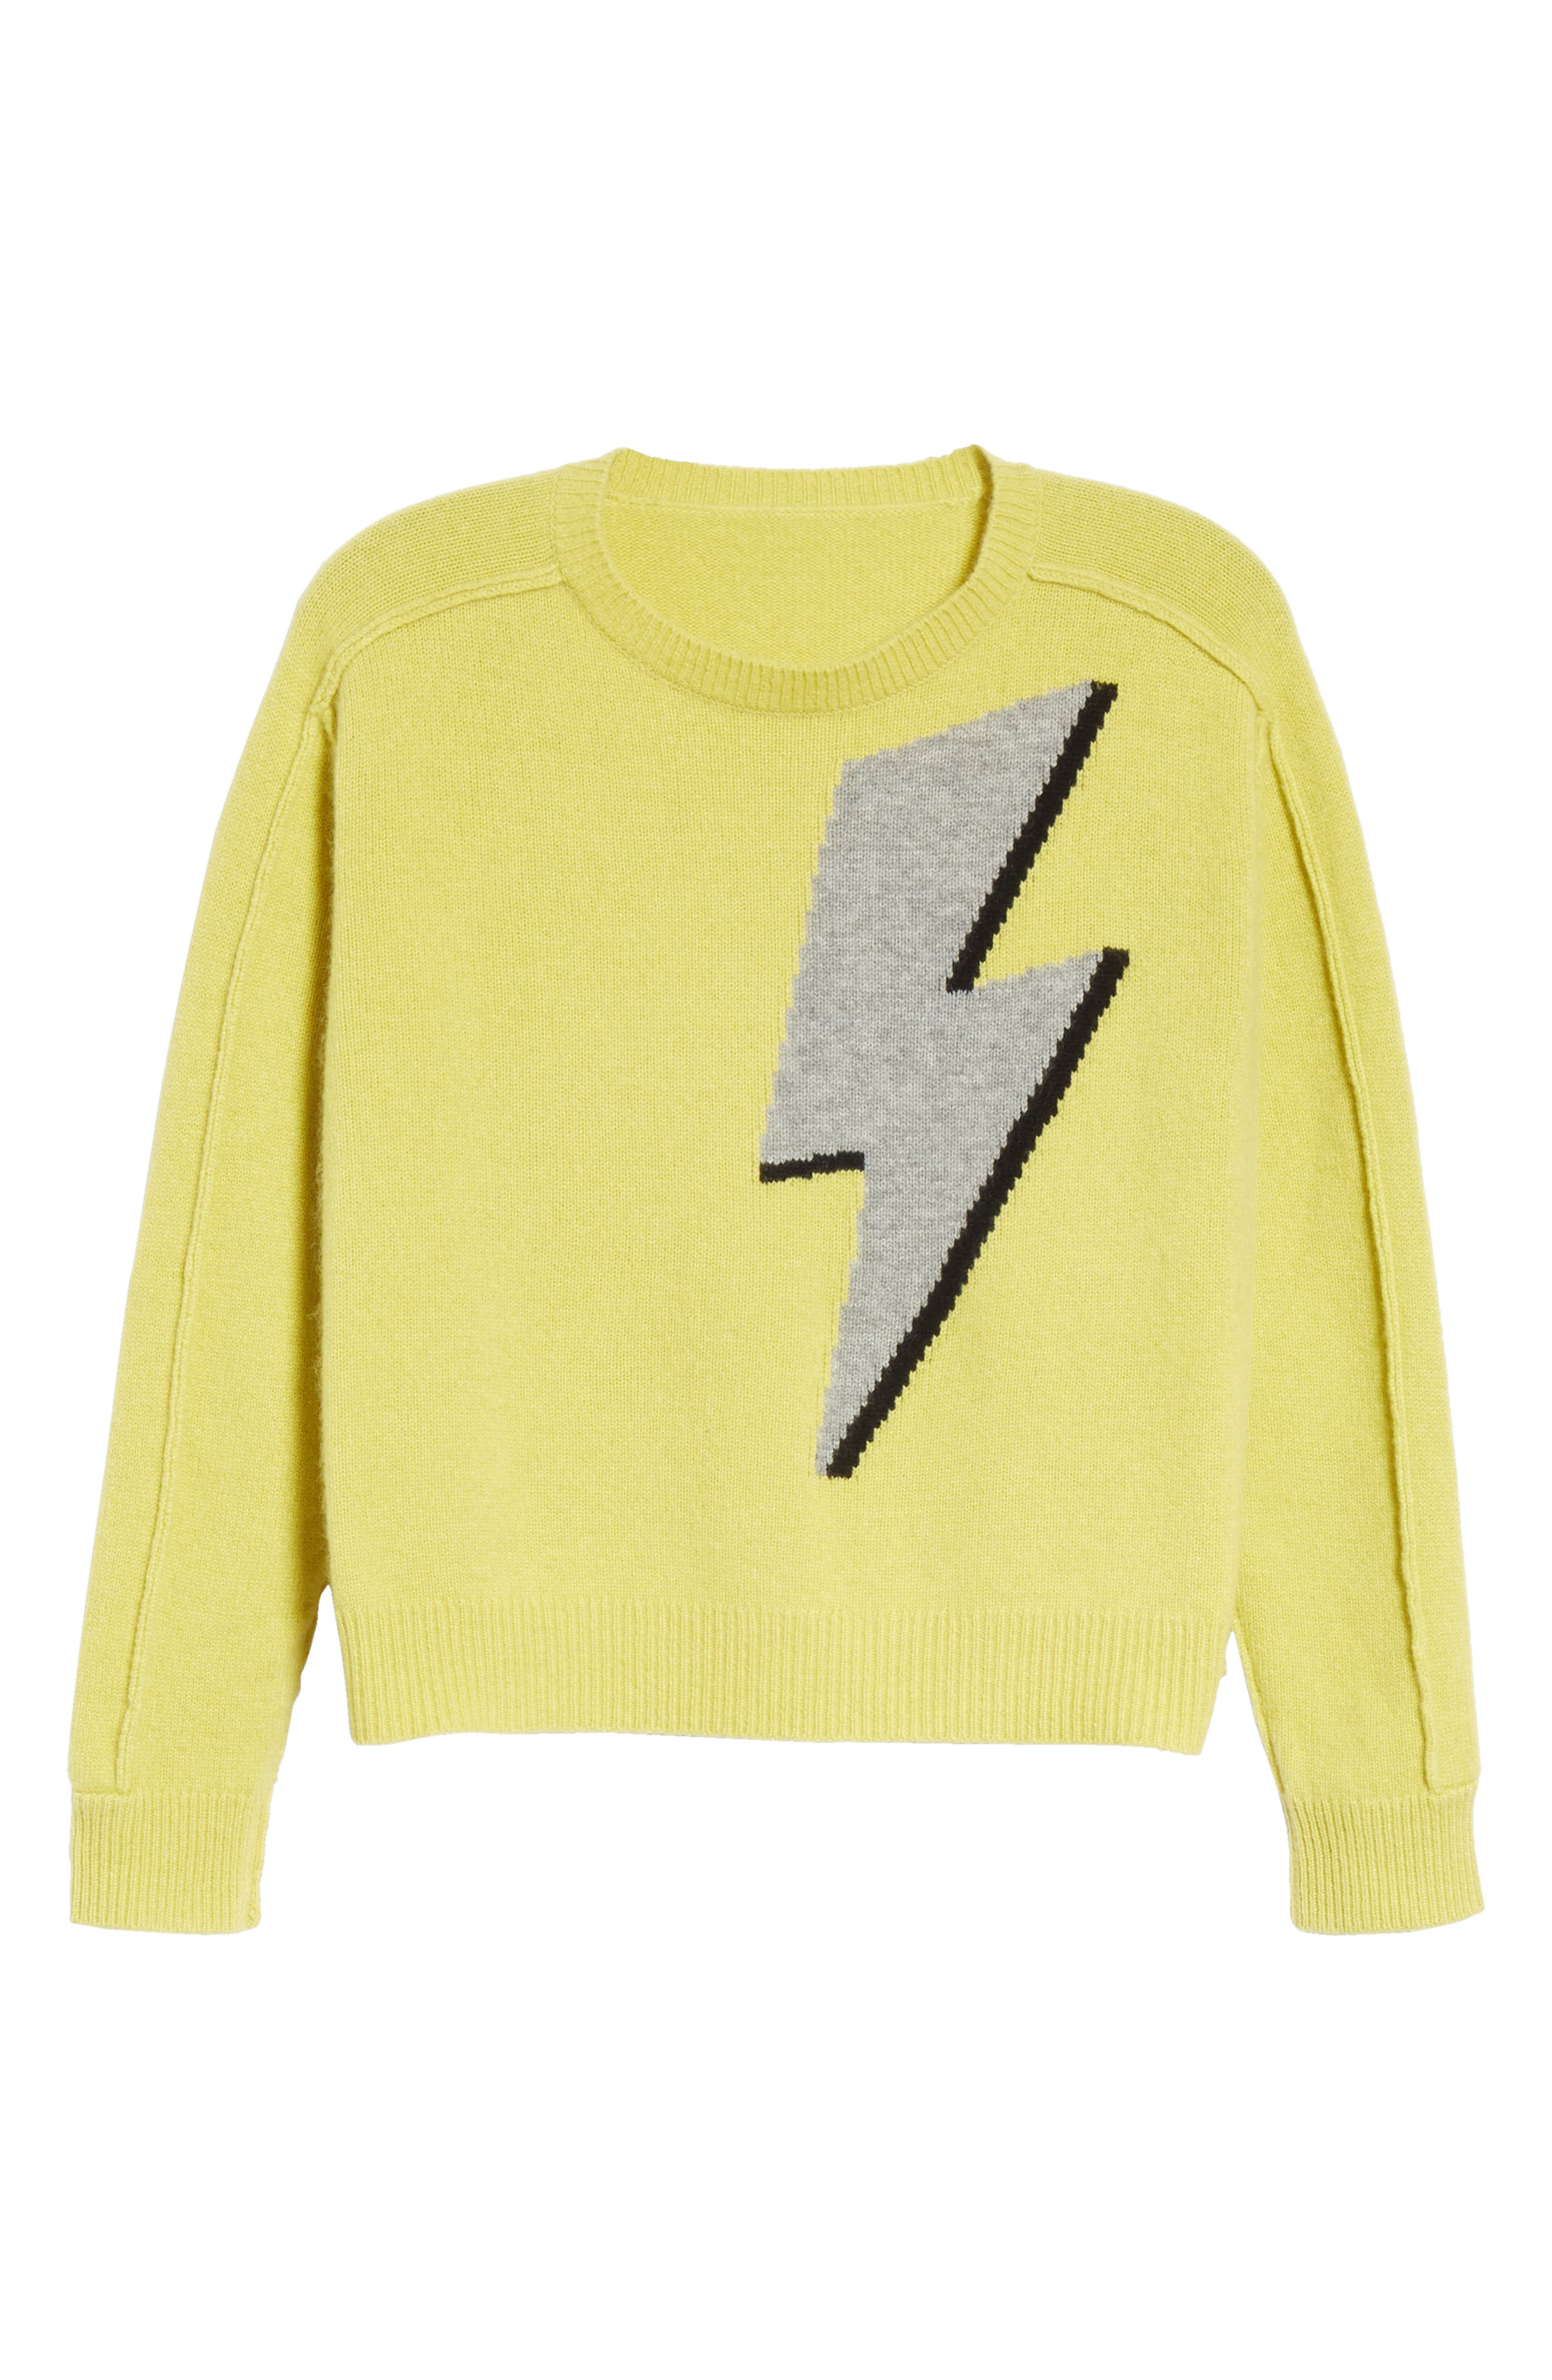 Lightning Bolt Wool & Cashmere Sweater,                             Alternate thumbnail 5, color,                             YELLOW/ GREY